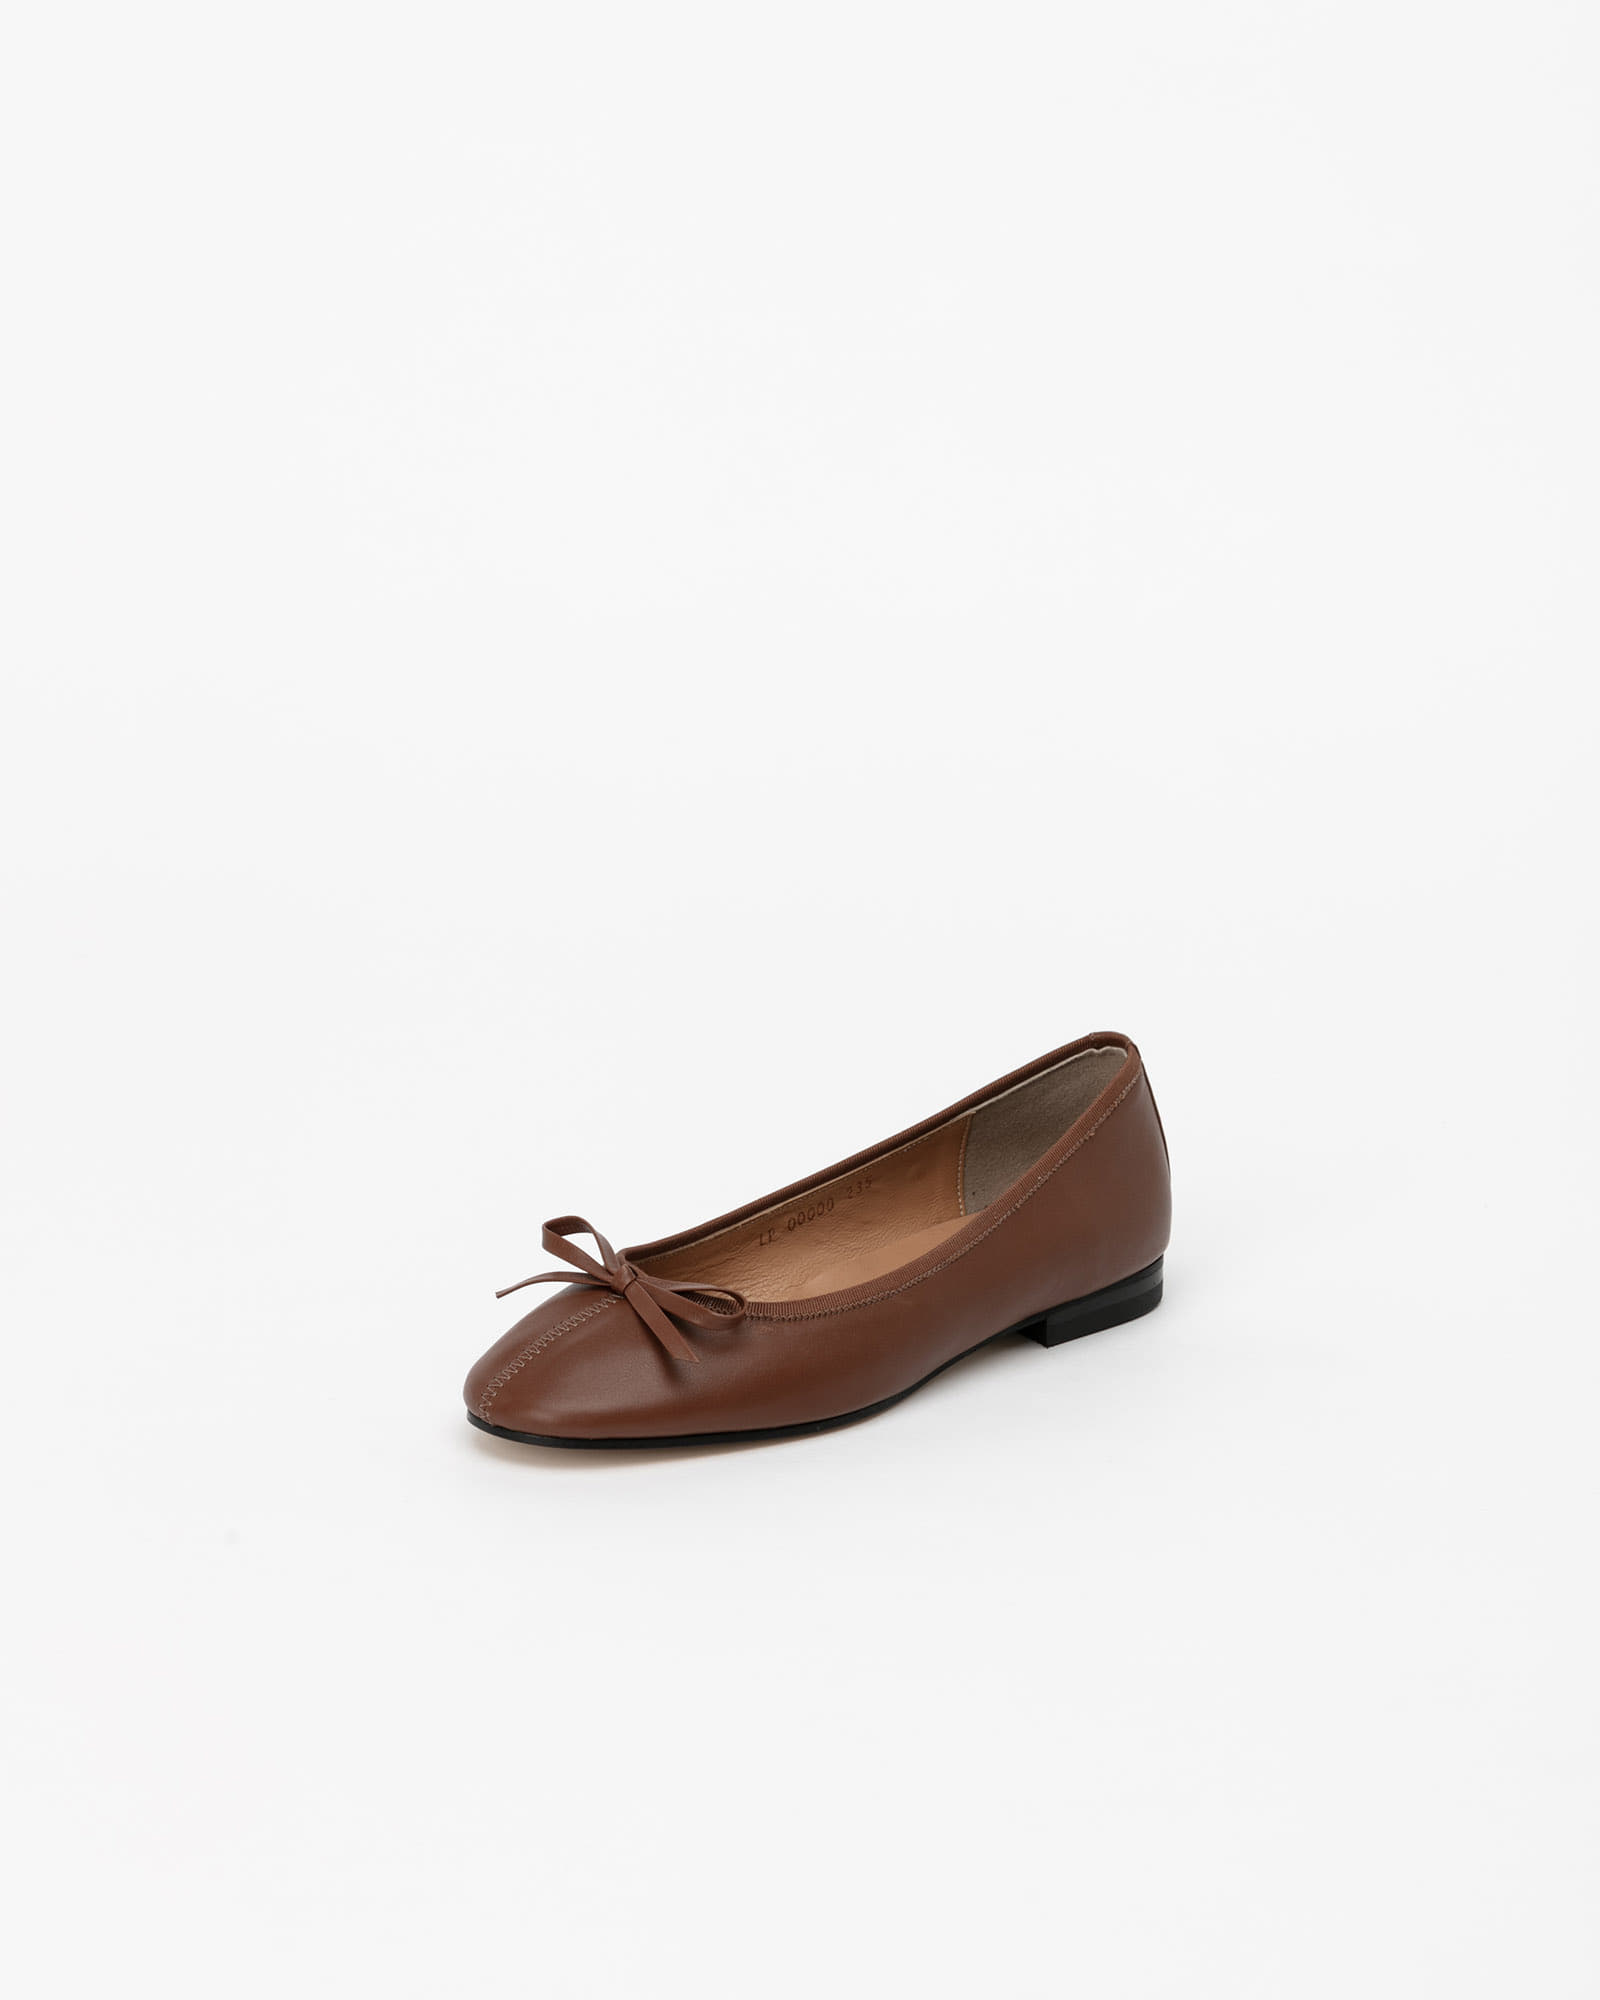 Urbana Flat Shoes in Deep Camel